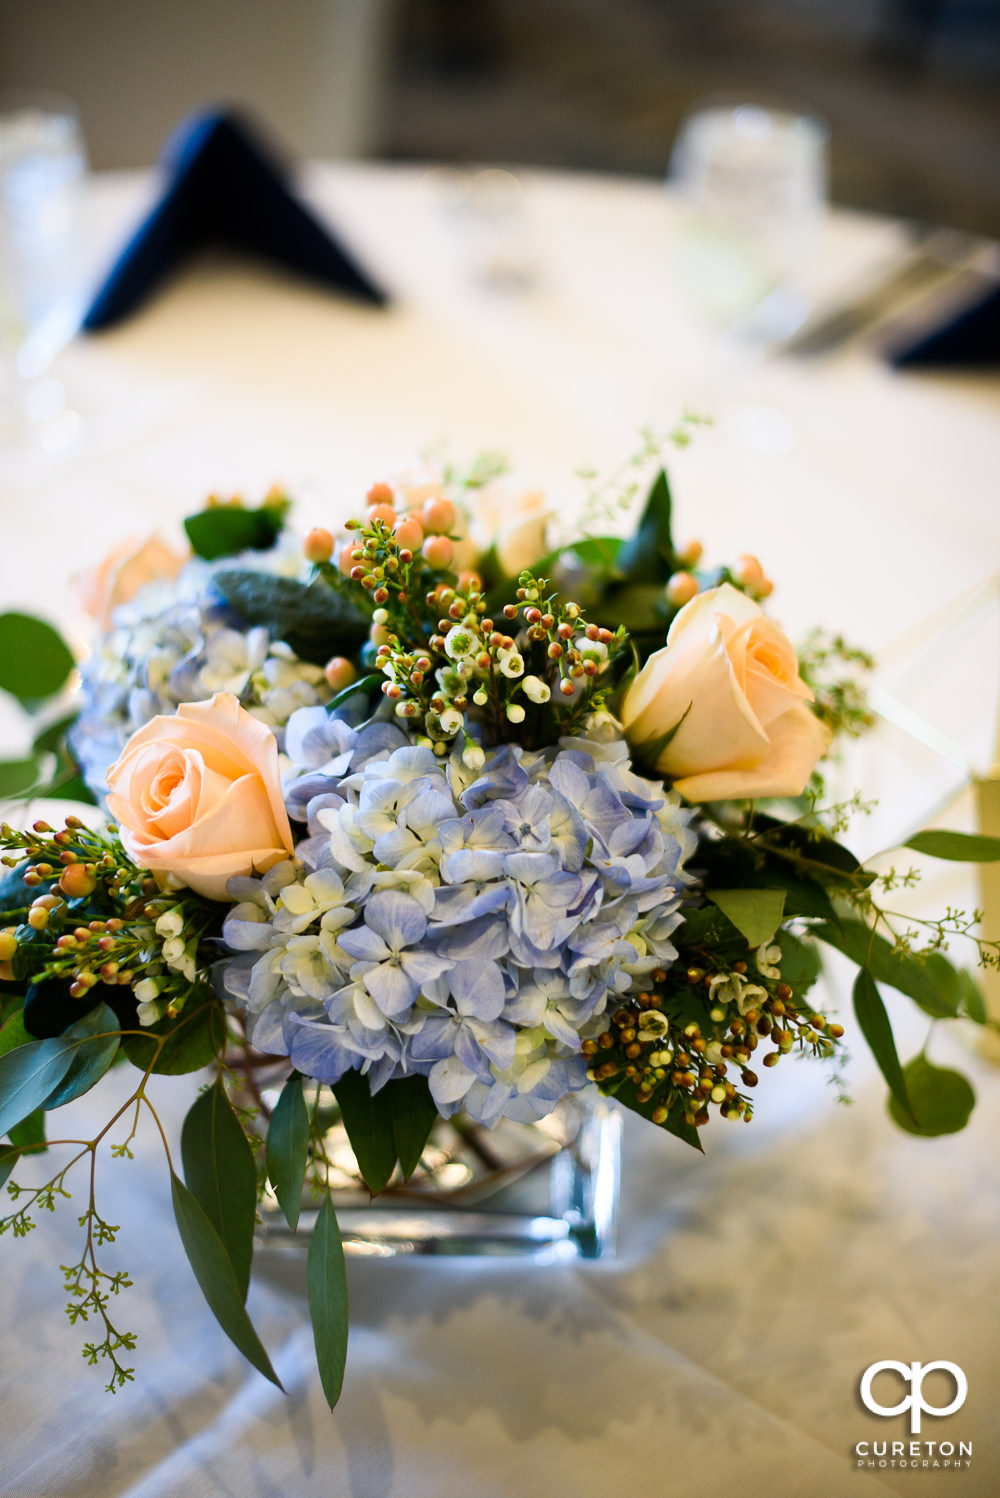 Floral centerpieces at the wedding rehearsal dinner at the Thornblade Country Club in Greenville , SC .